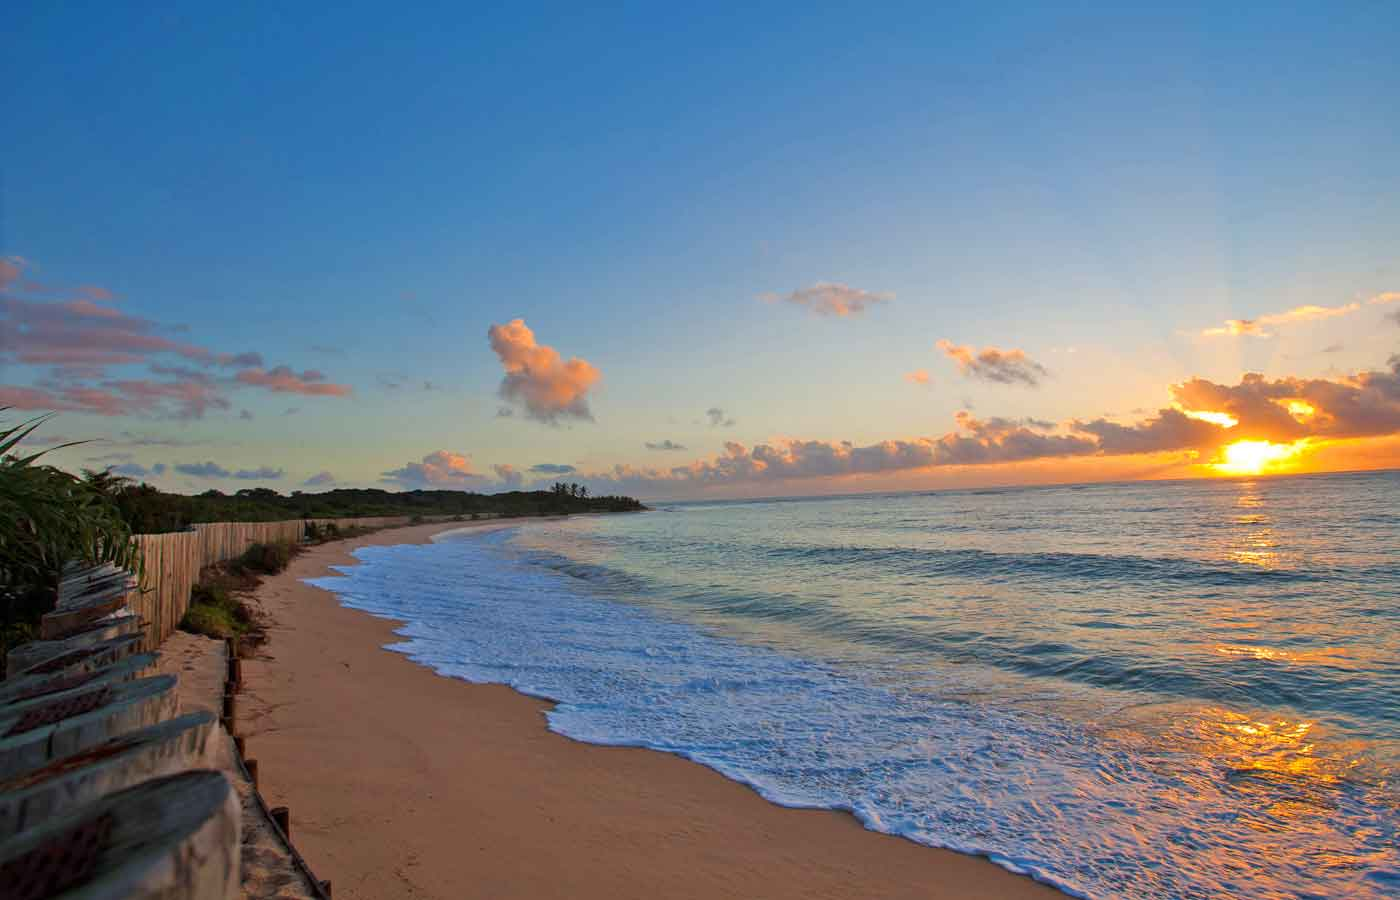 Sunset and beach views from Pousada Tutabel in Trancoso, Bahia, in Brazil